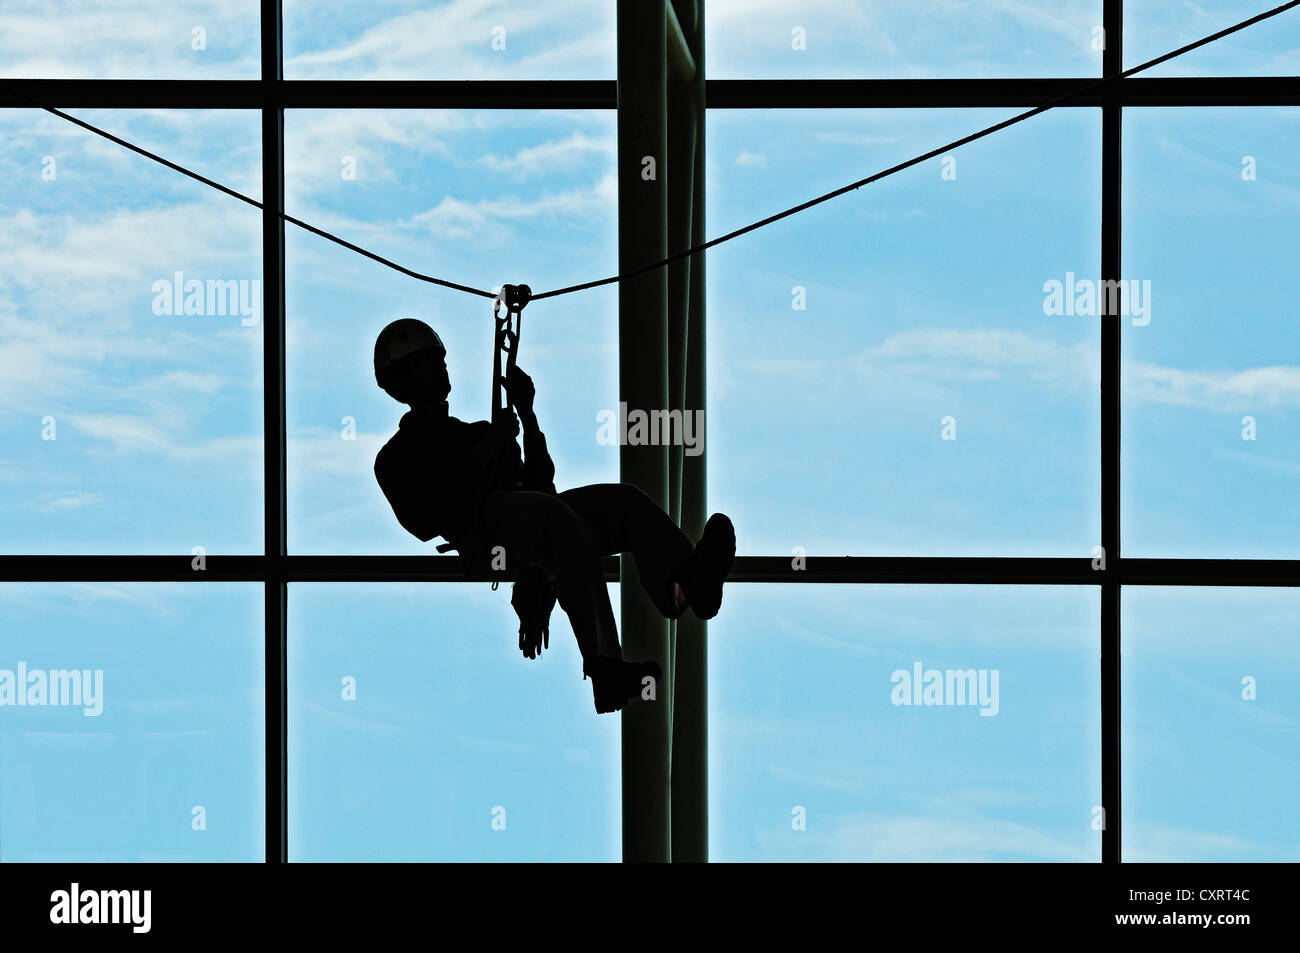 Advertising of canopy rope tours at San José Airport, Costa Rica, Central America Stock Photo